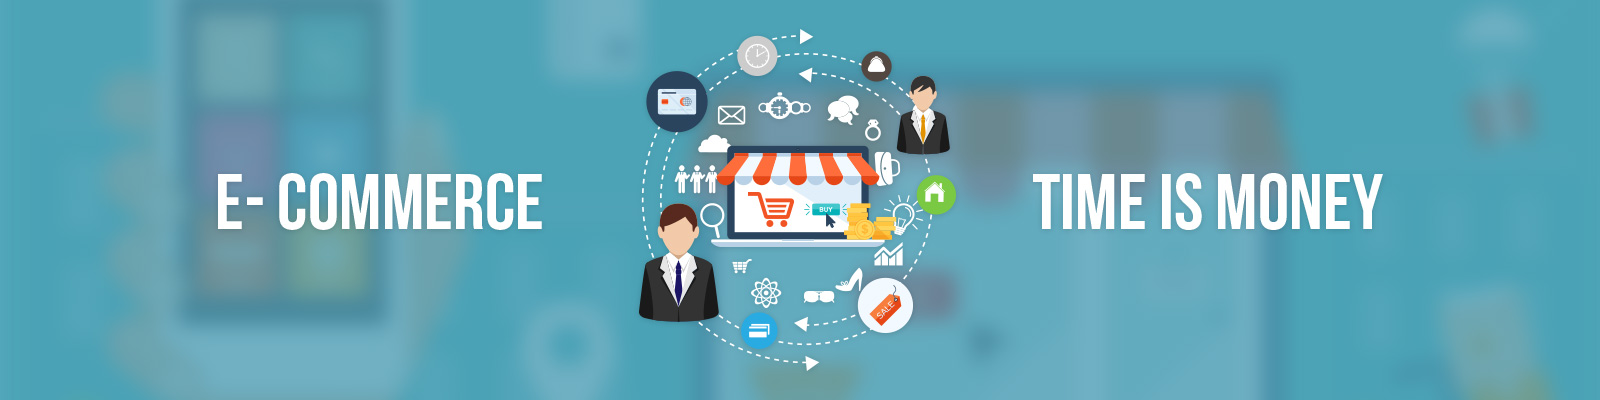 ecommerce application development cost